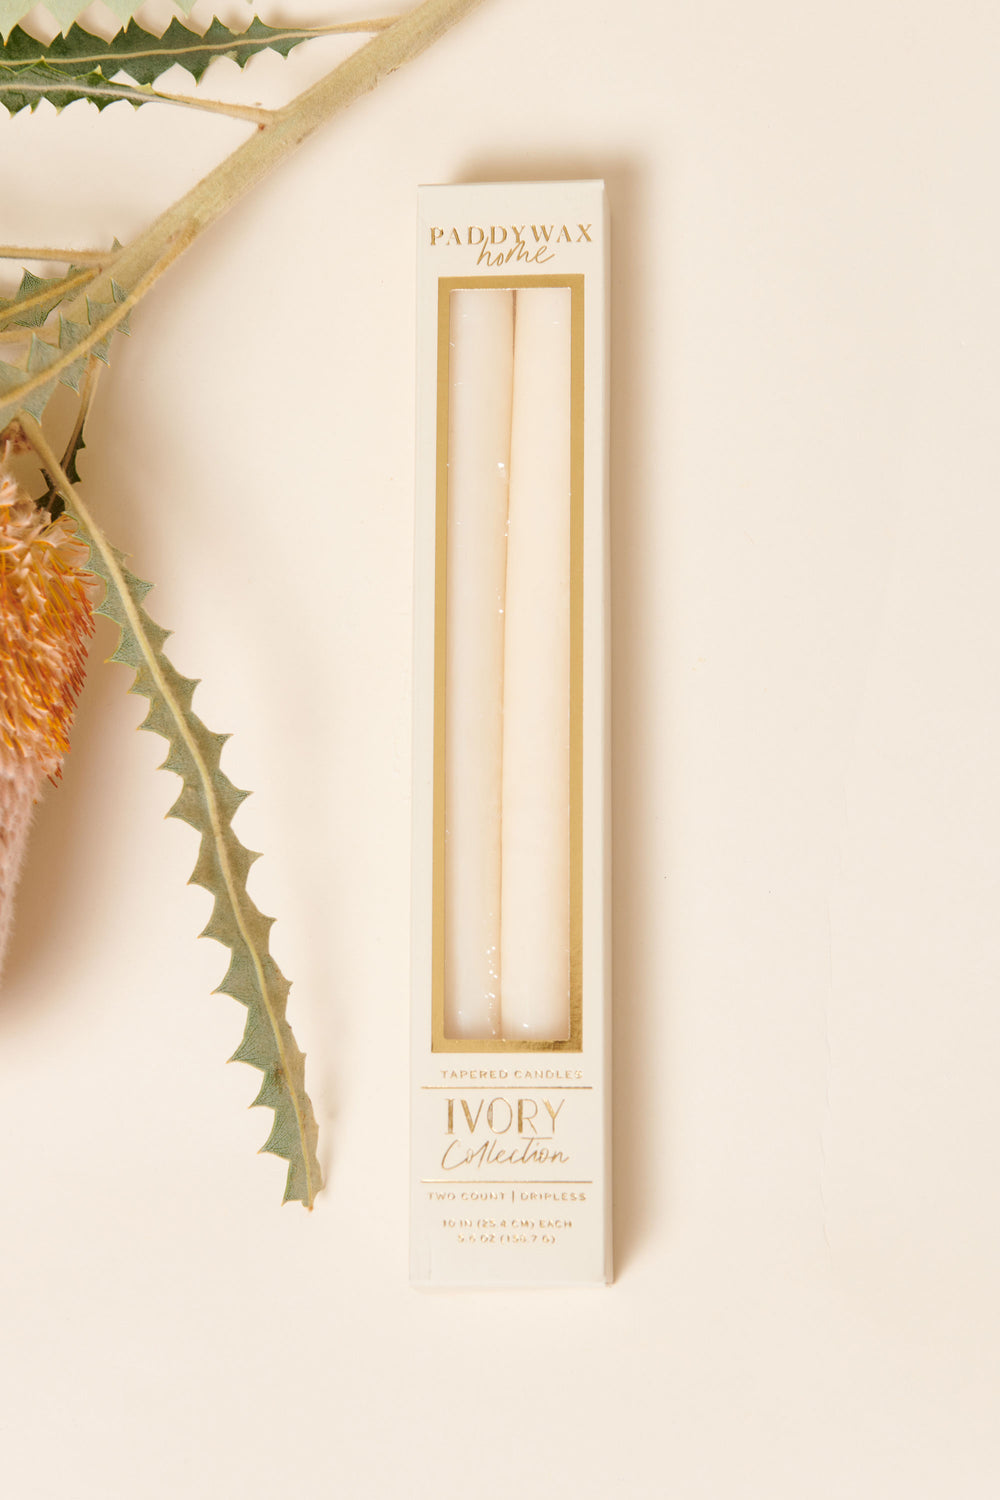 Paddywax Taper Candle Set in Ivory - Whimsy & Row